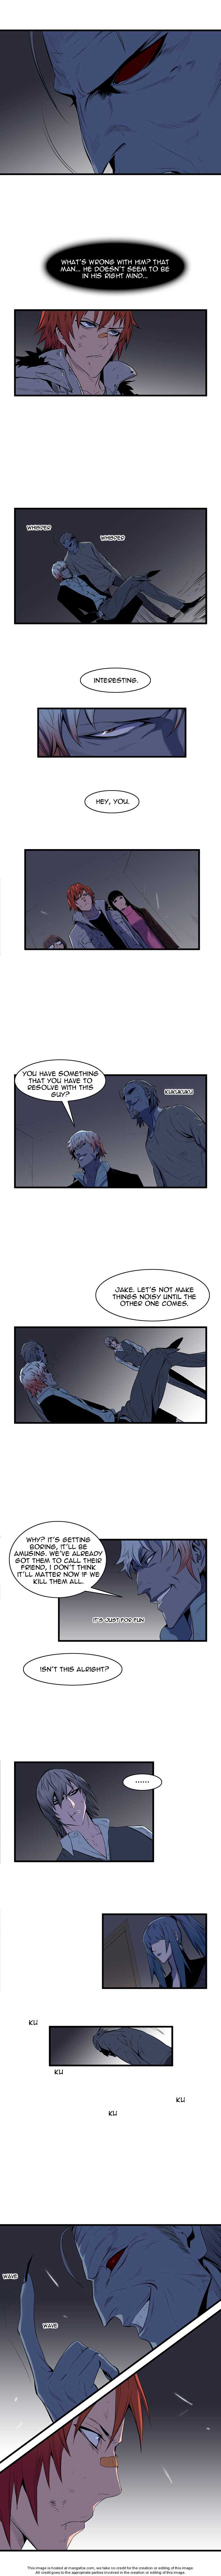 Noblesse 68 Page 2